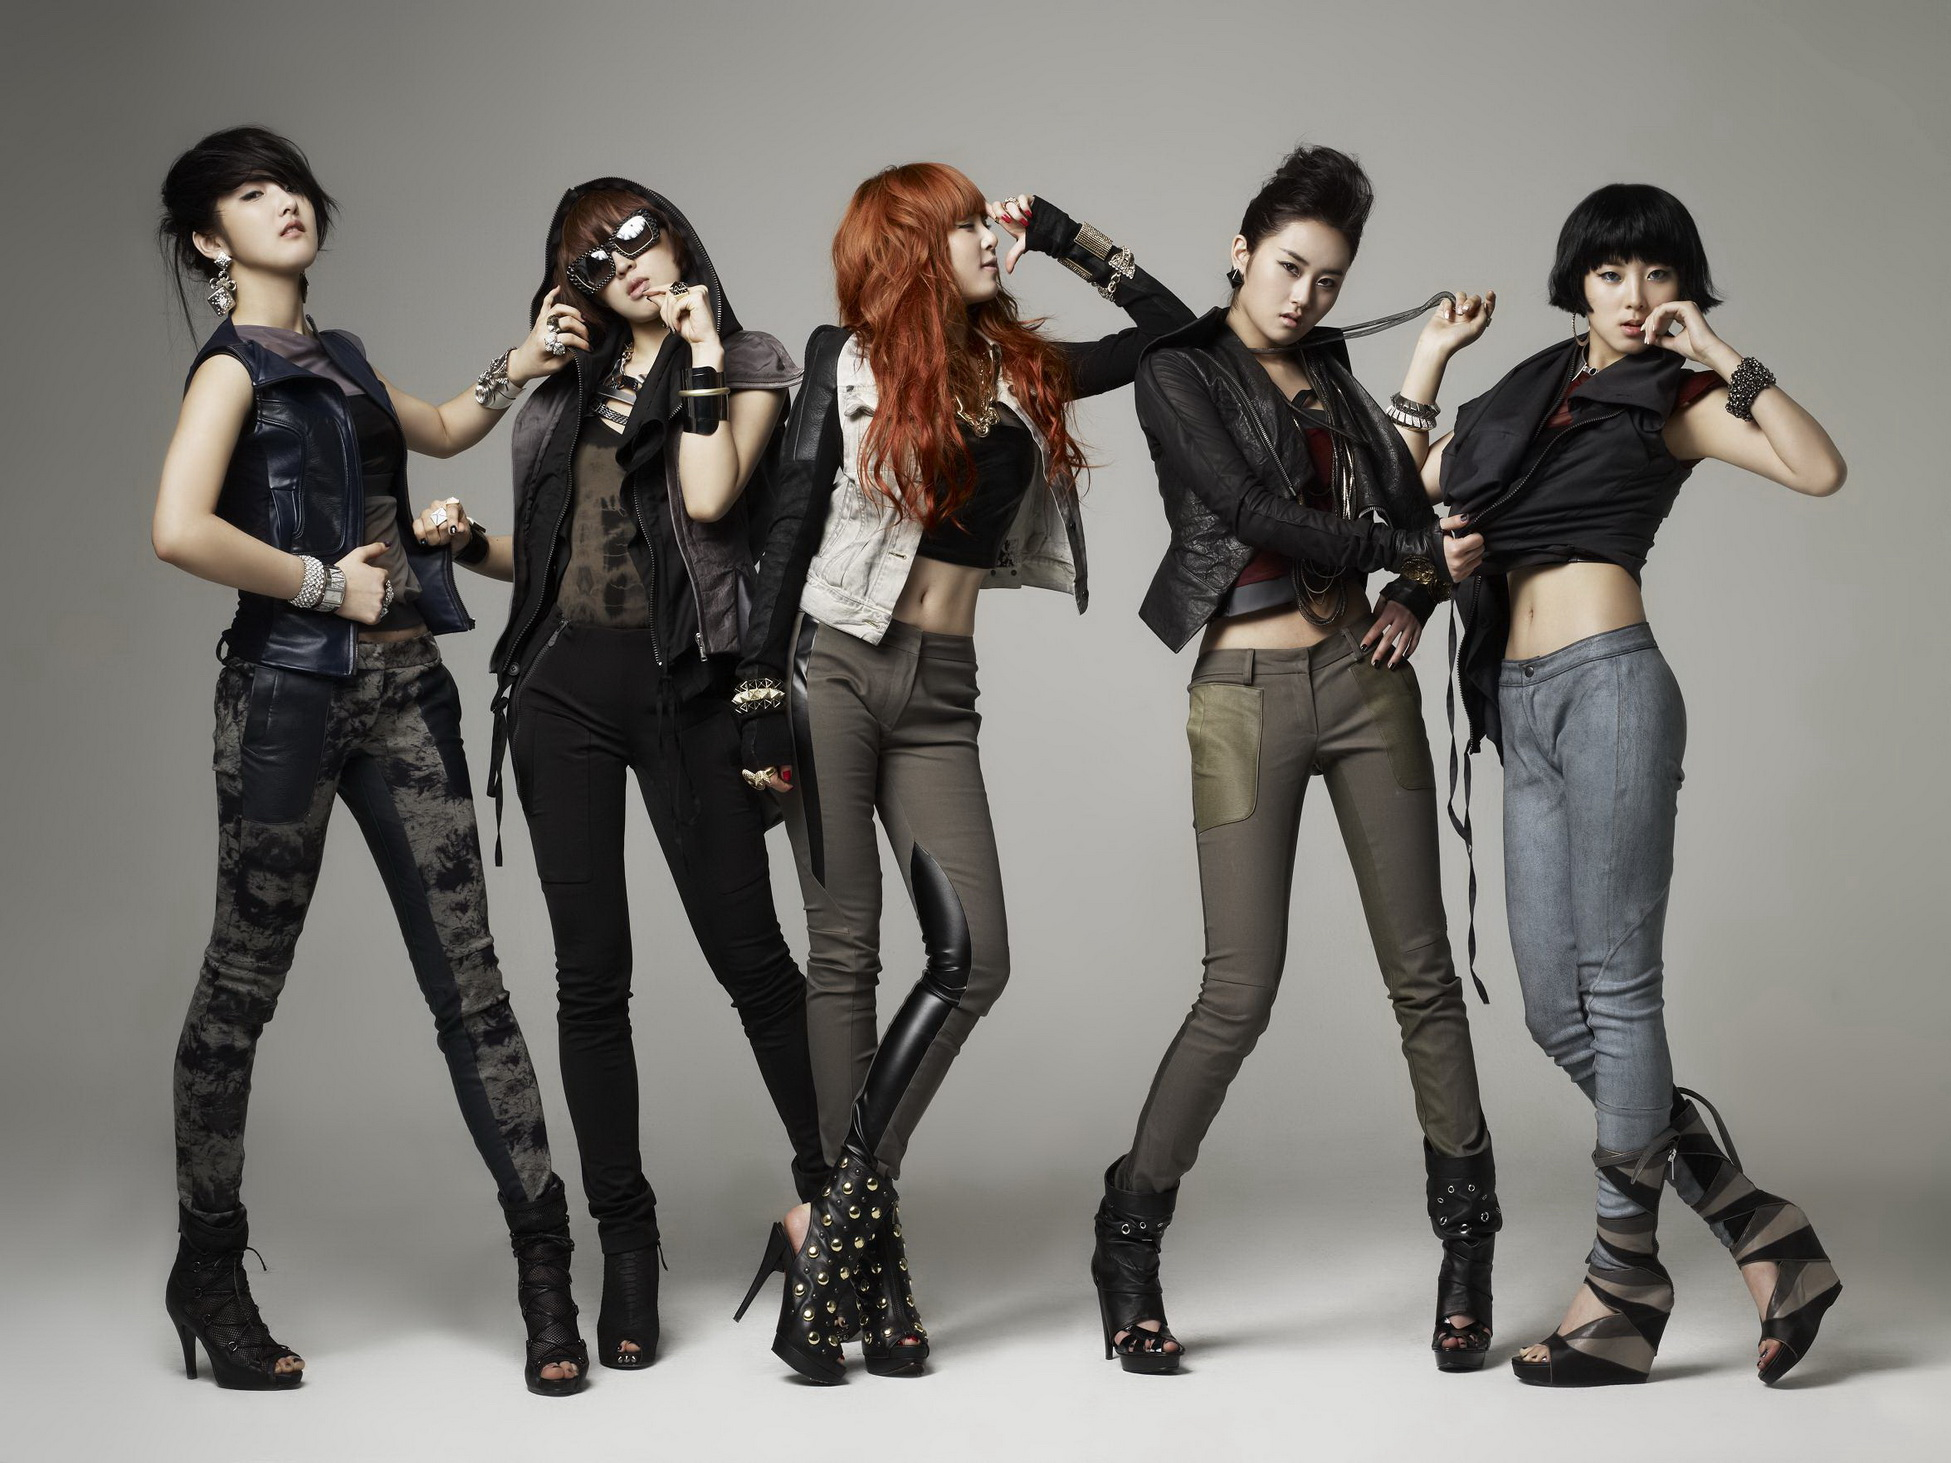 Underground S Artists 4minute The Pennington